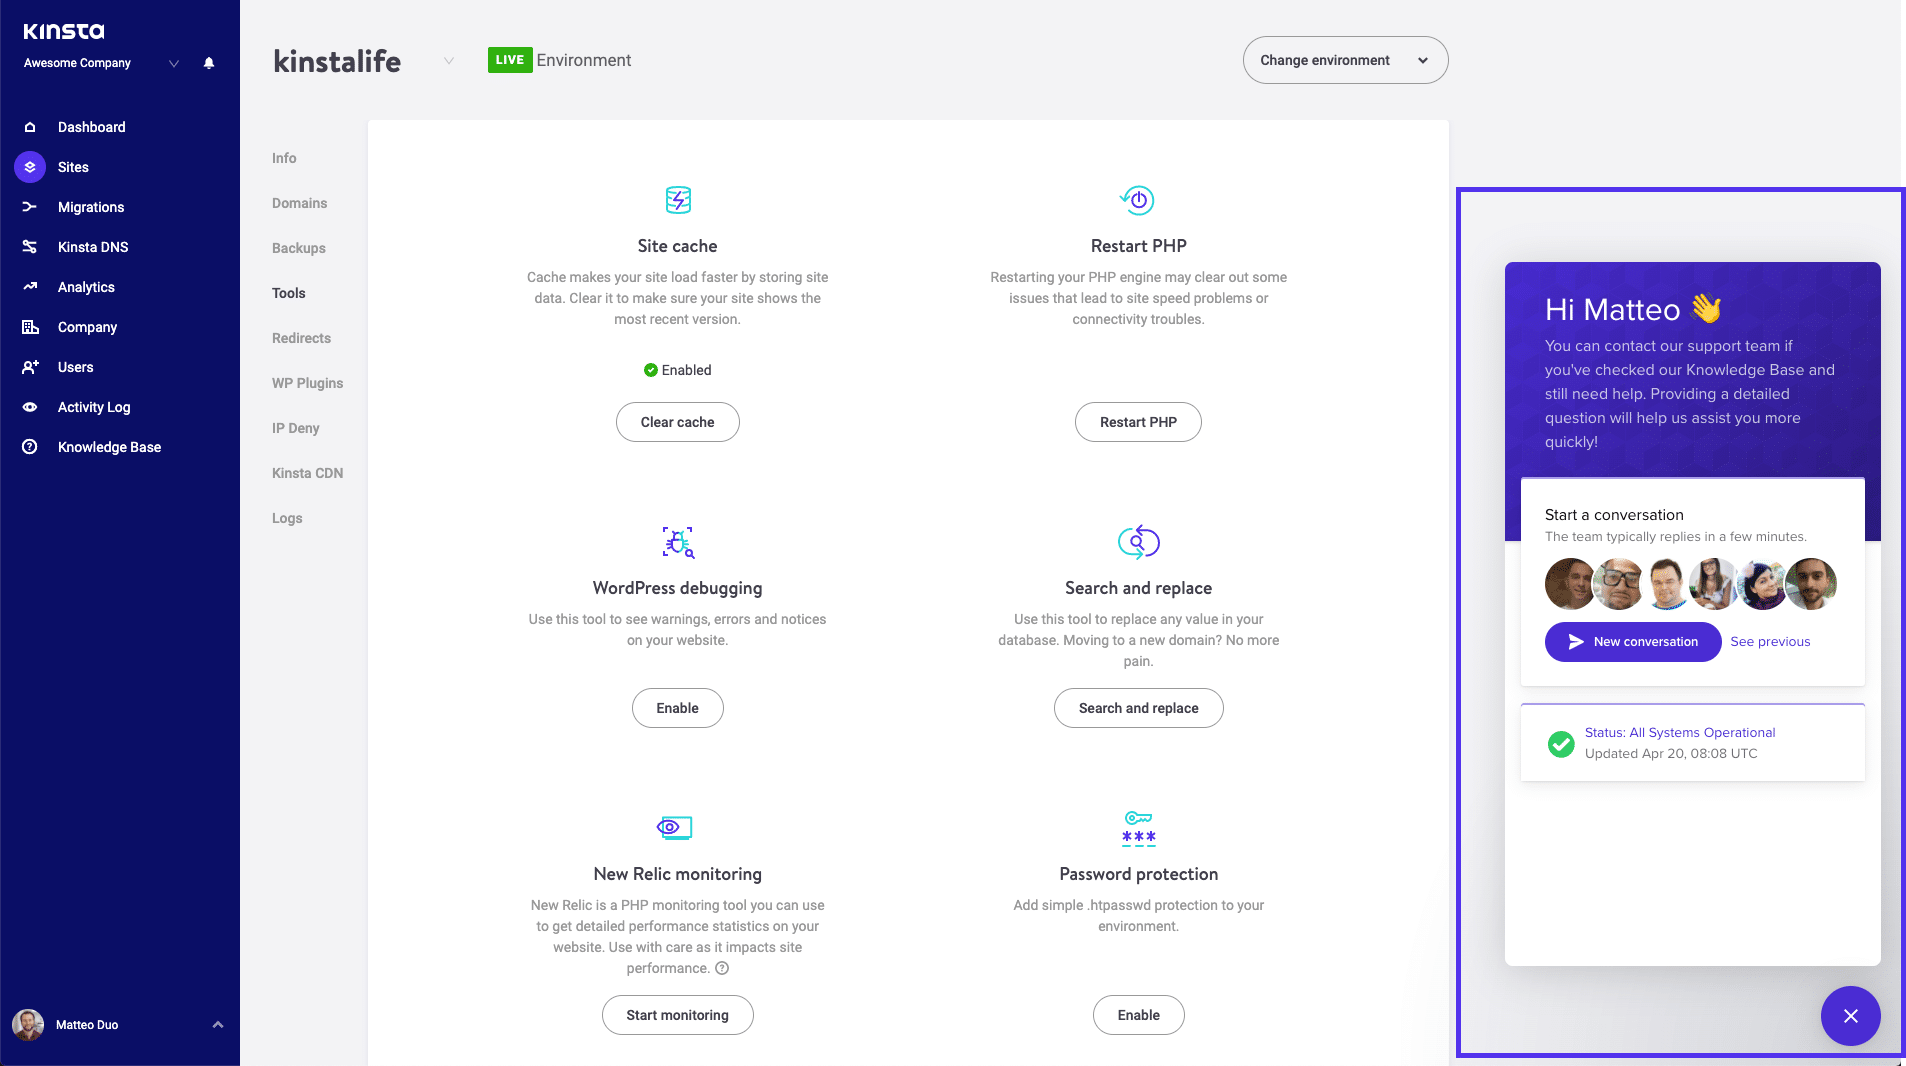 How to contact Kinsta support